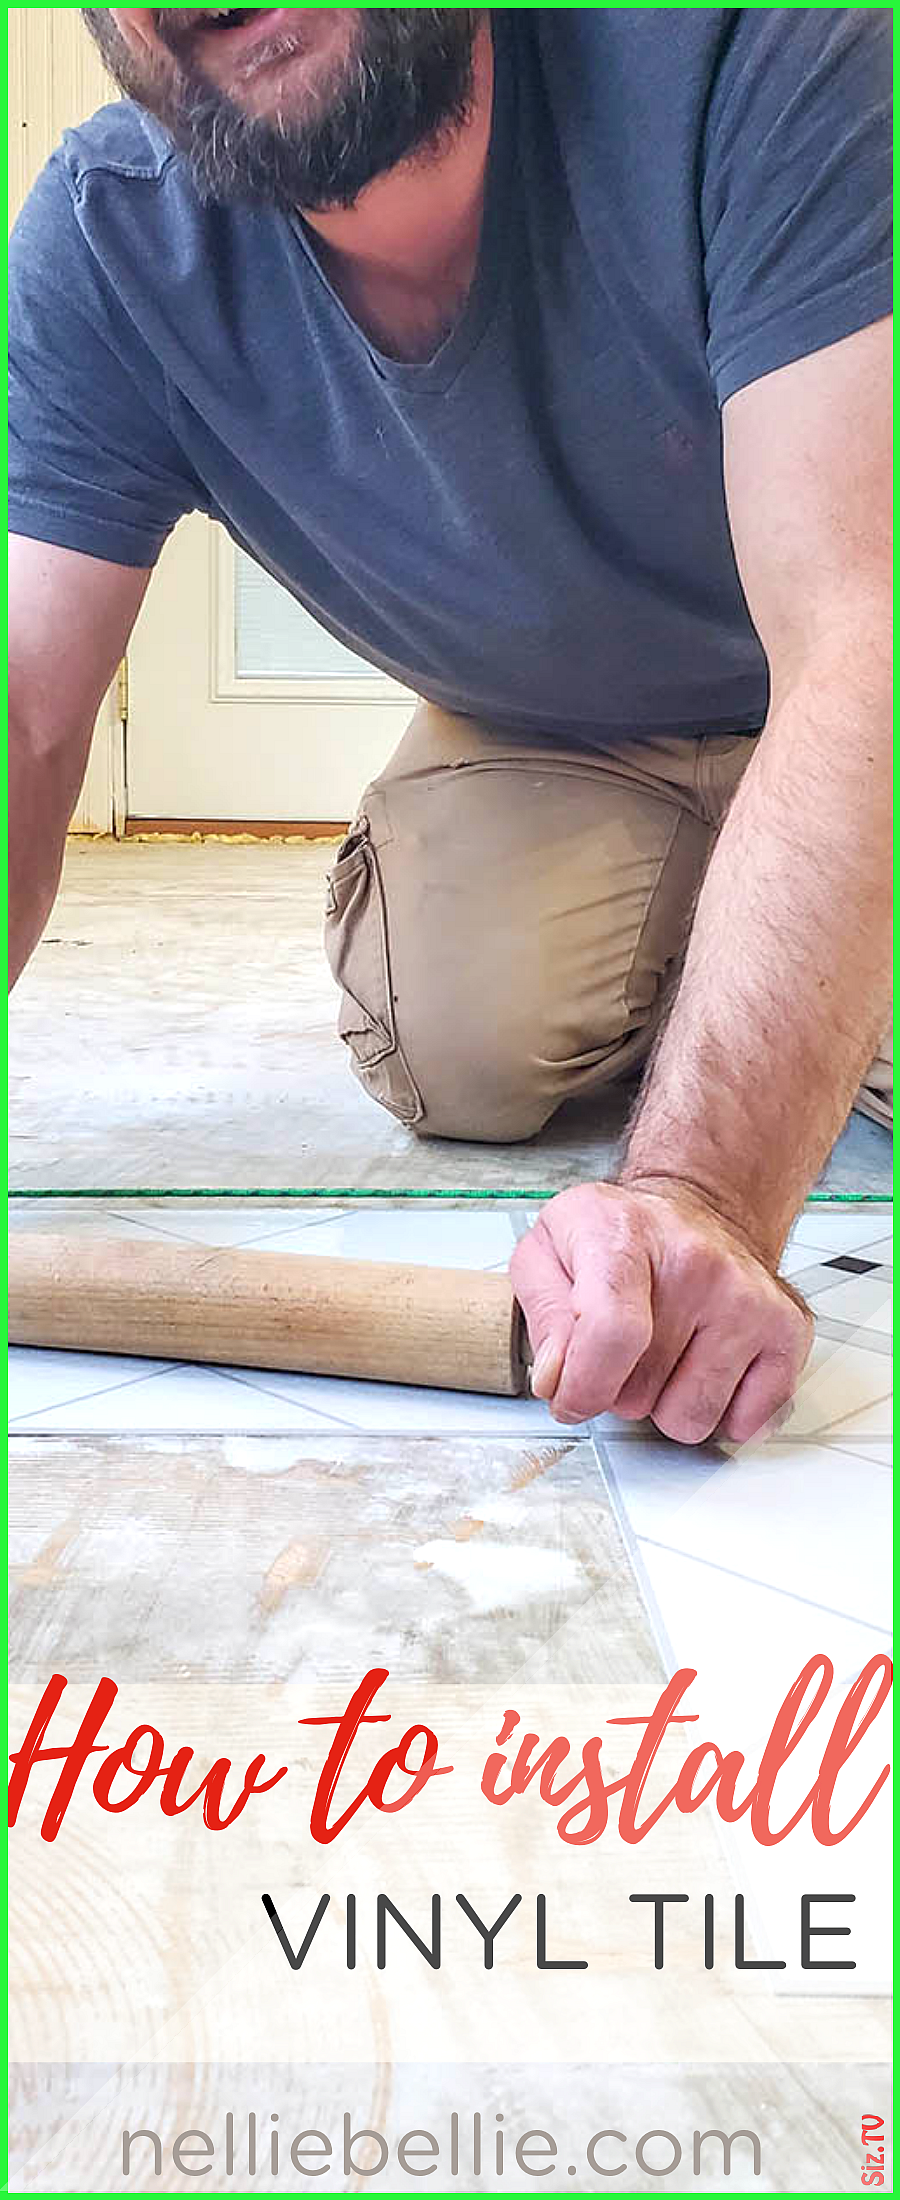 How to install peel and stick vinyl tile Such an inexpensive flooring option to DIY yourself follow this tutorial to get great results diyflooring How to install peel and...